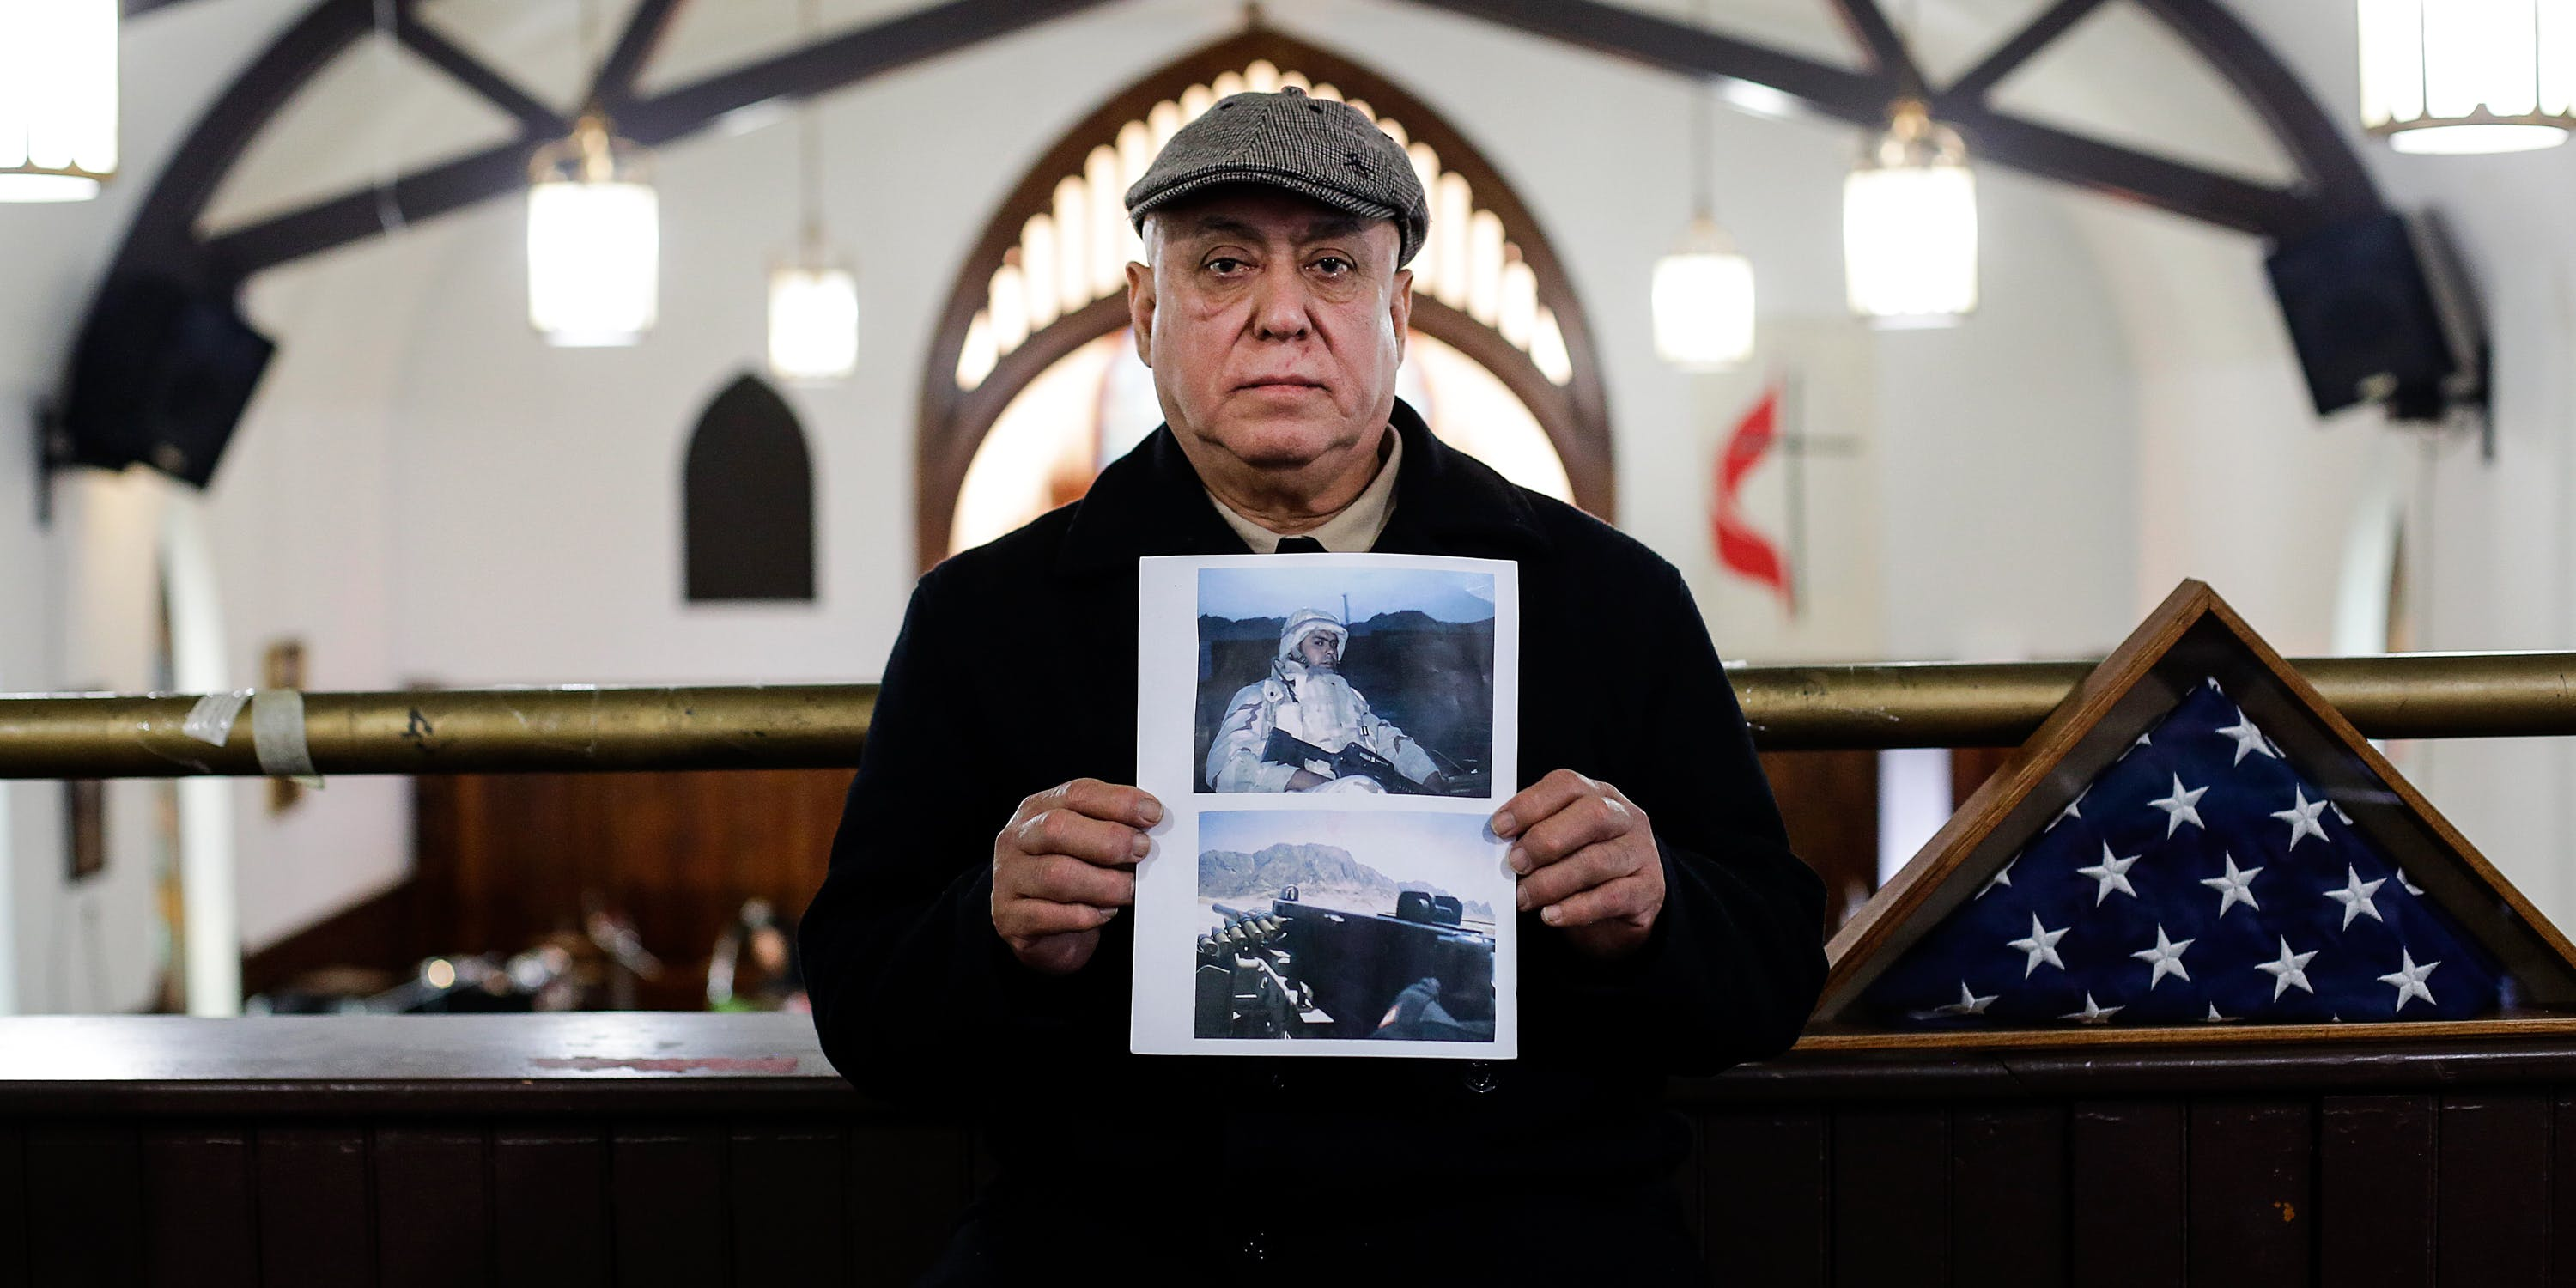 Veteran Miguel Perez Jr. Deported To Mexico After Two Tours In Afghanistan